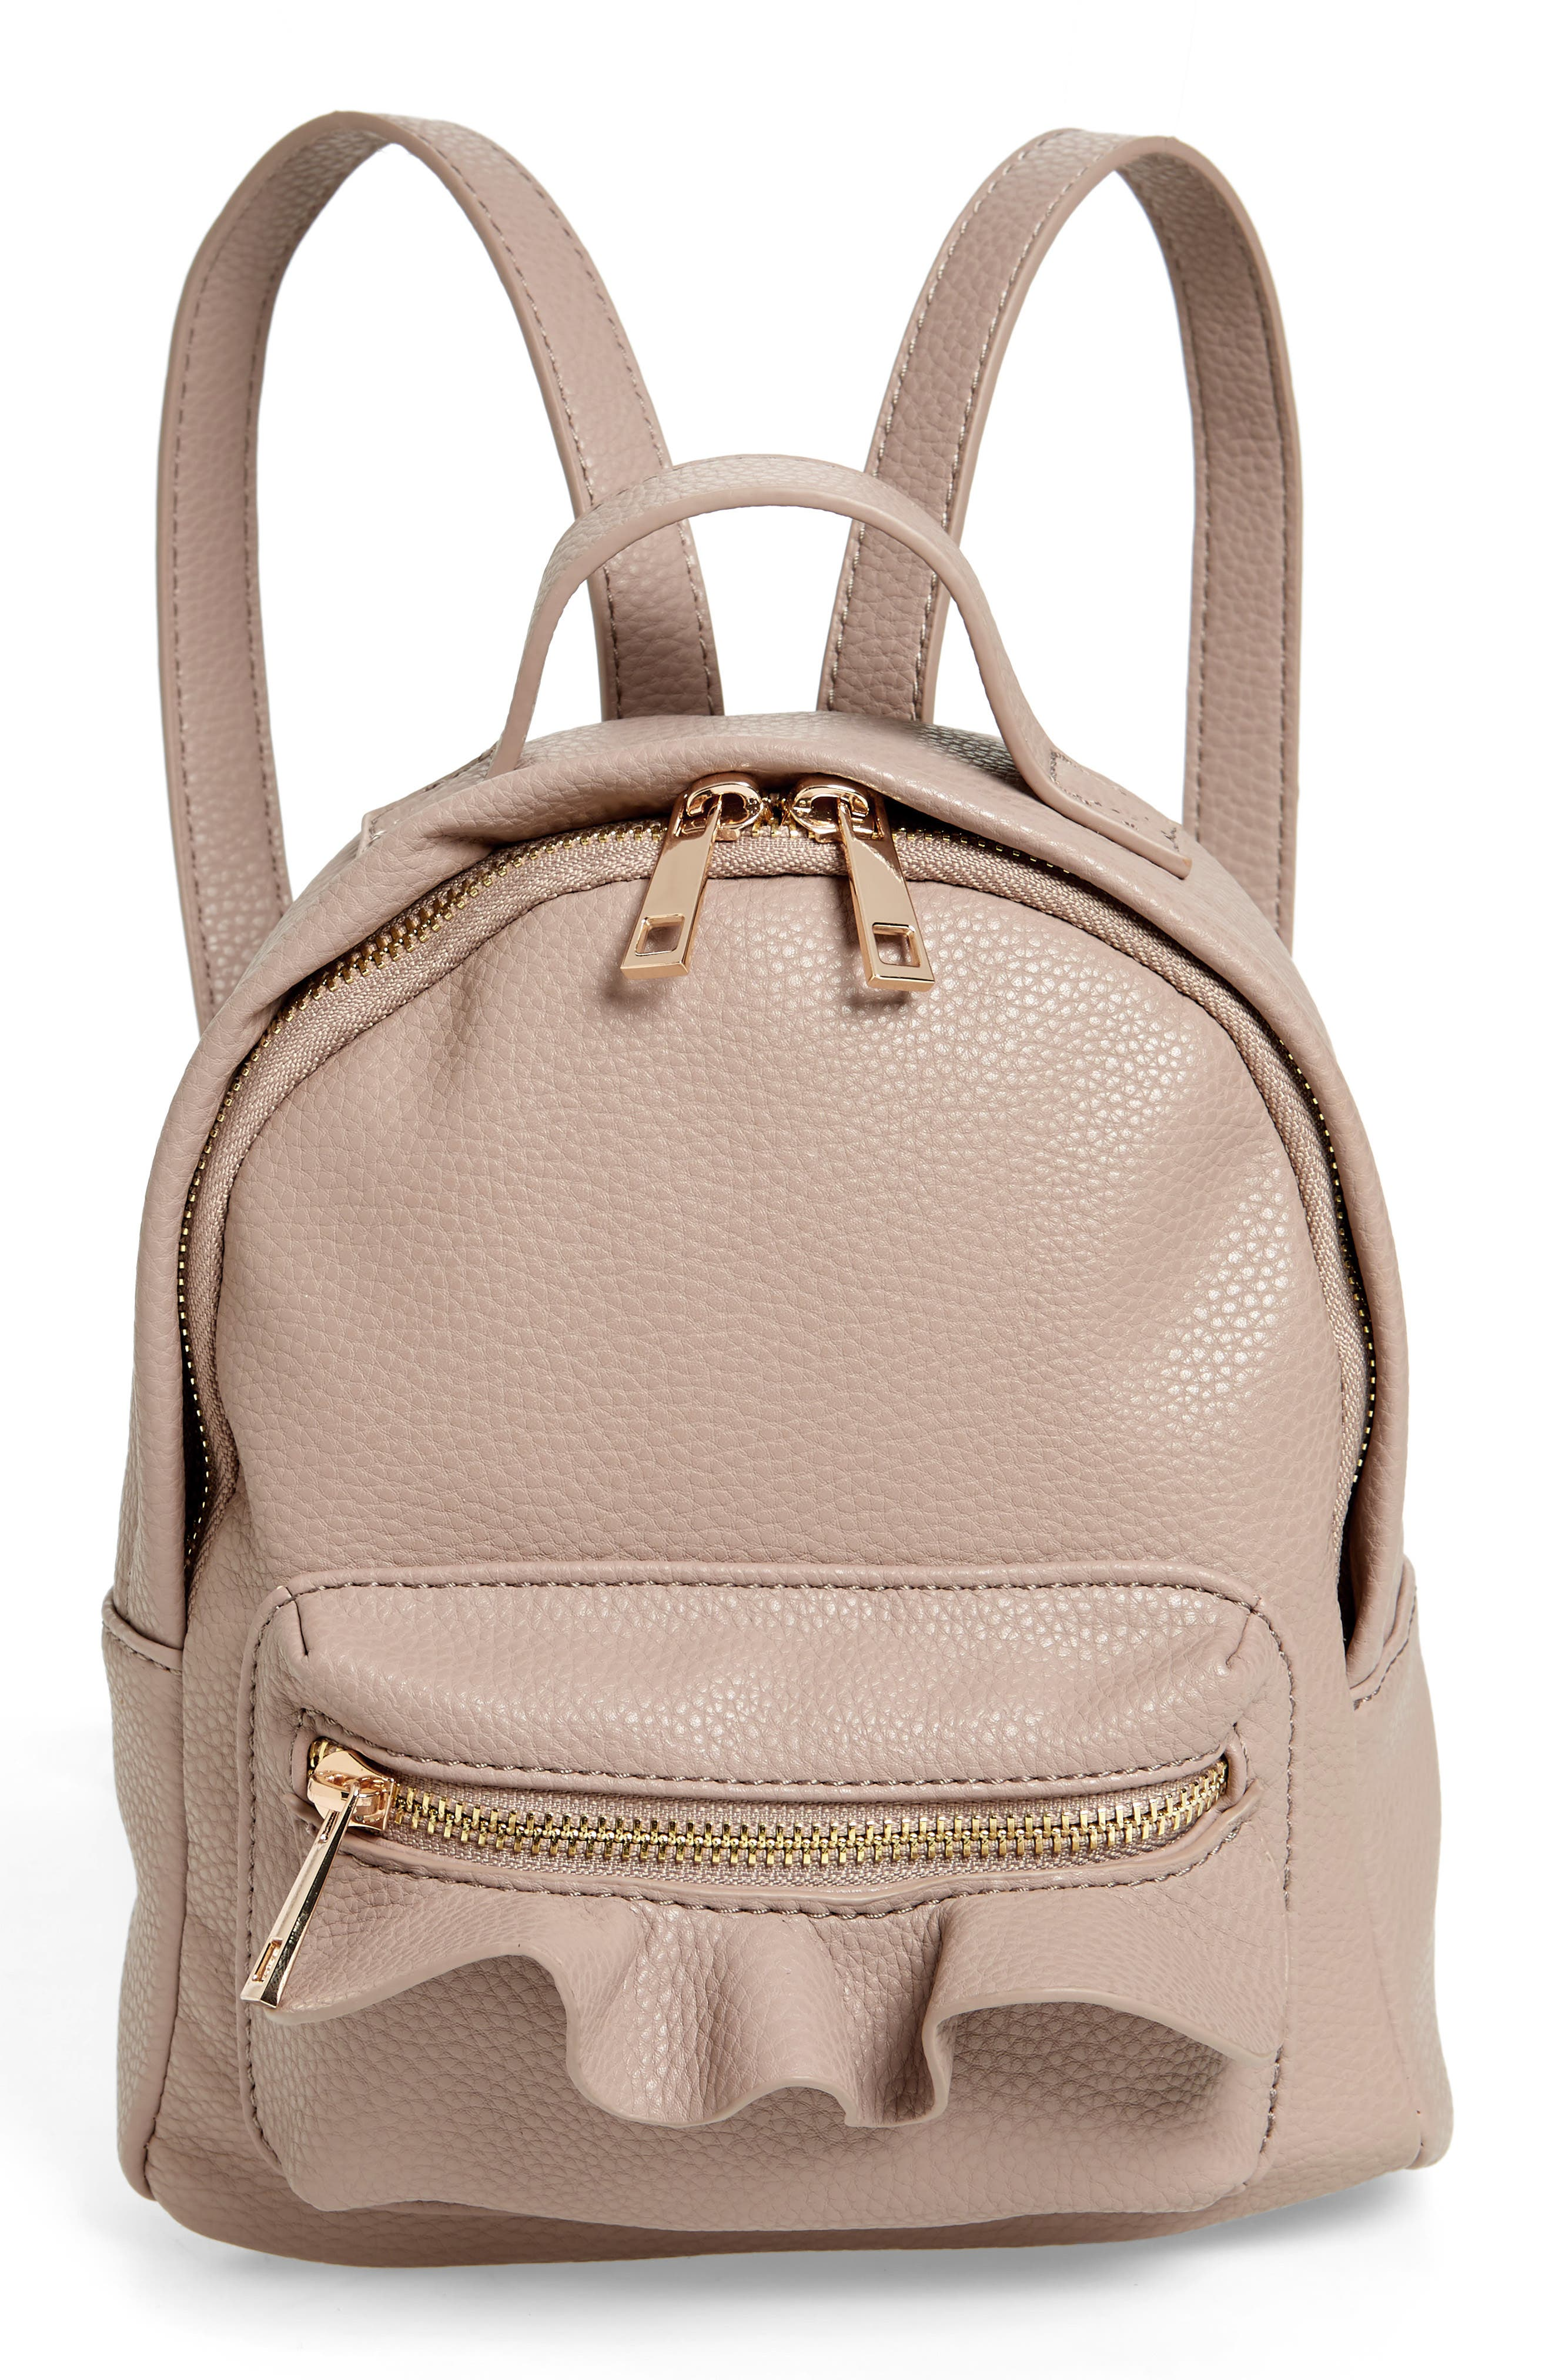 Tracie Mini Faux Leather Backpack,                             Main thumbnail 1, color,                             250